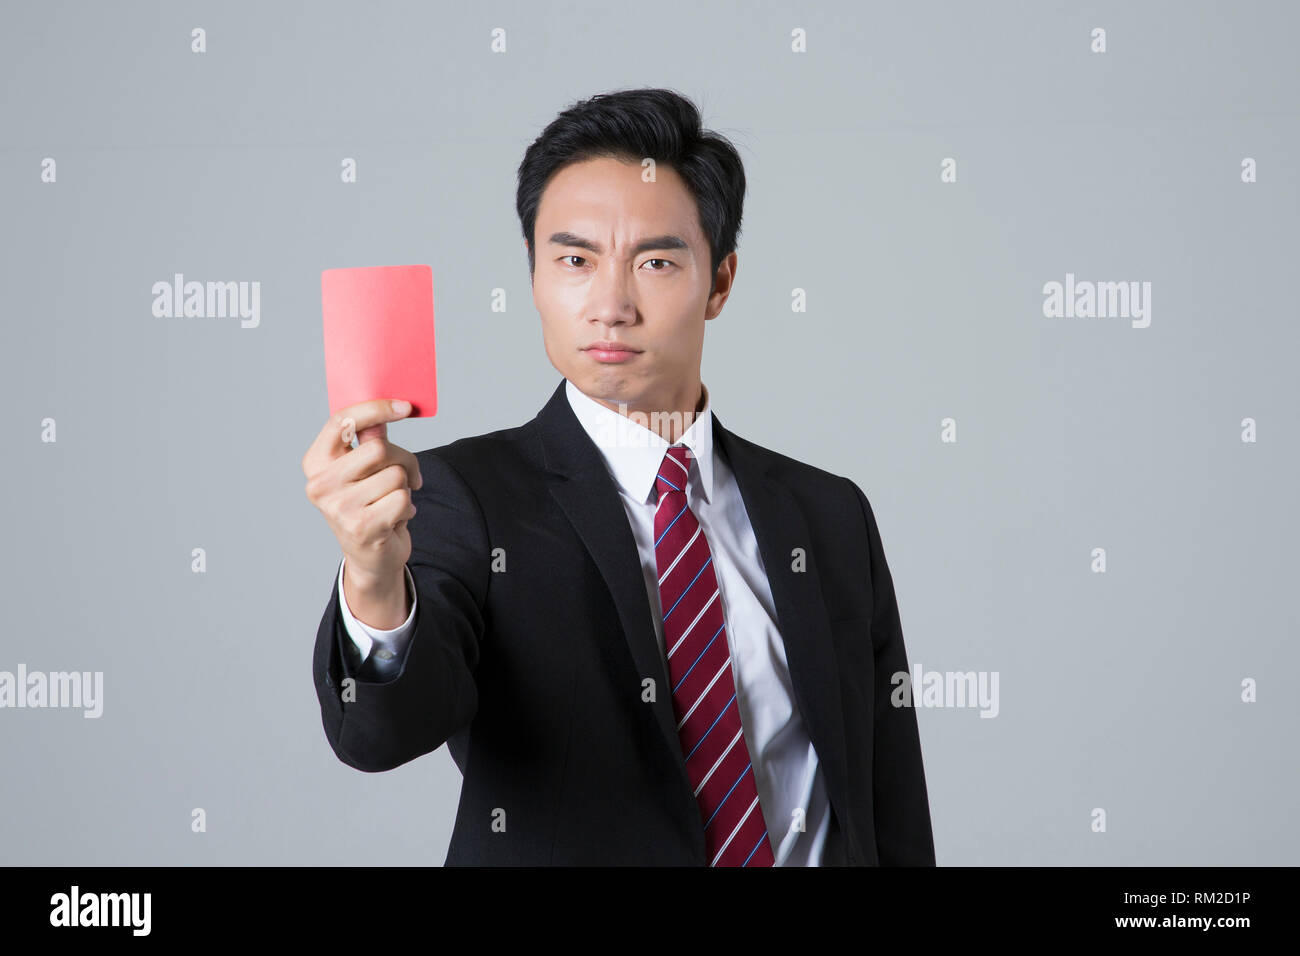 Young businessman concept photo. 129 - Stock Image